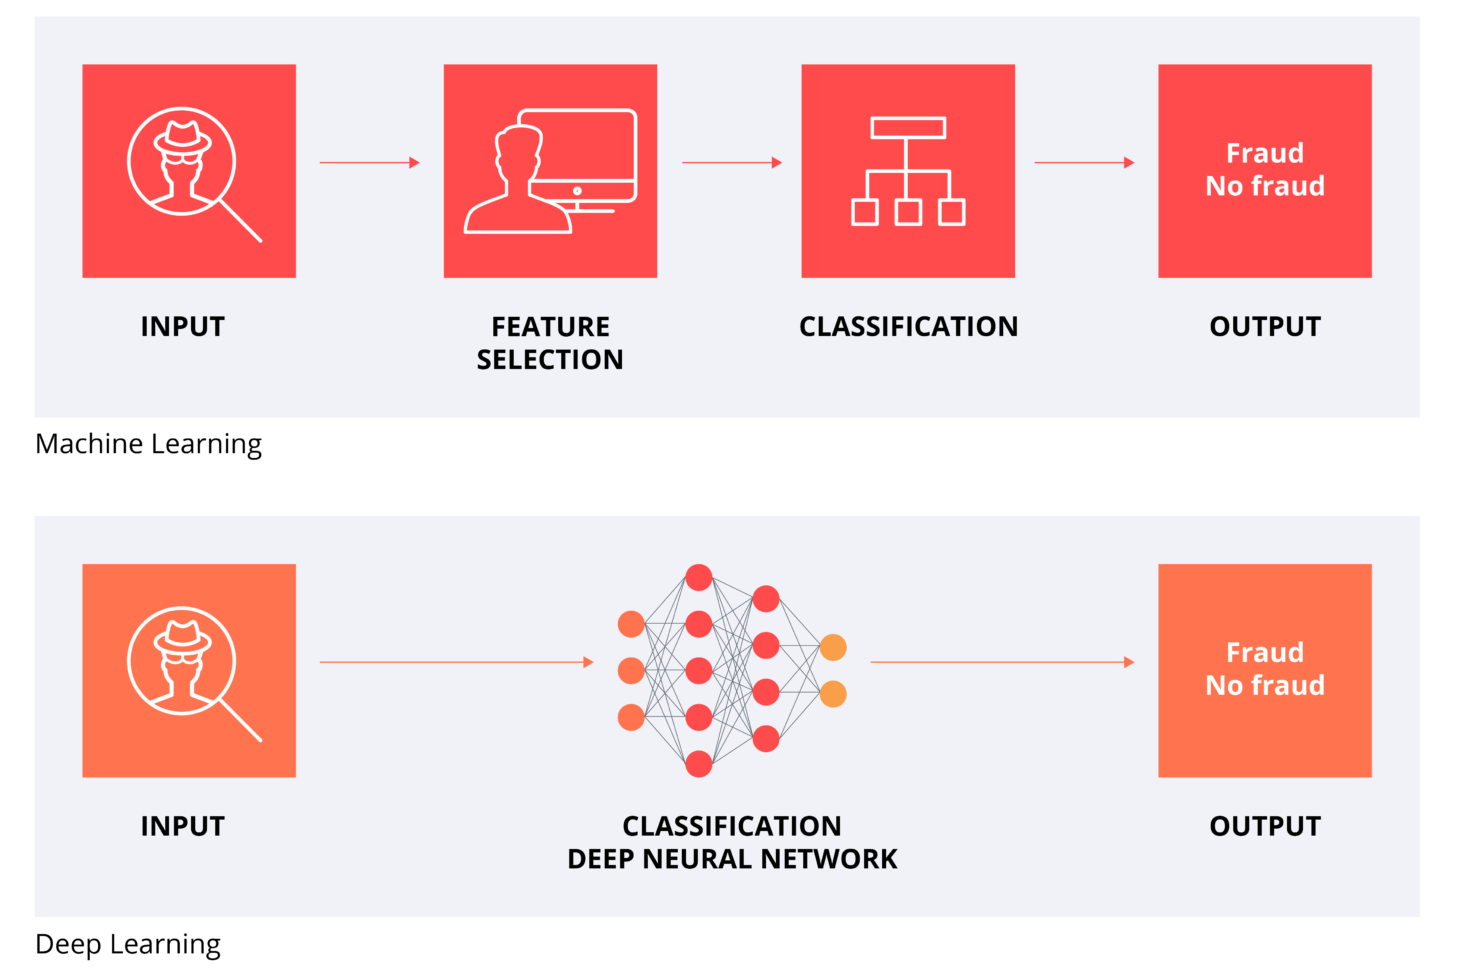 This diagram illustrates a Deep Learning model